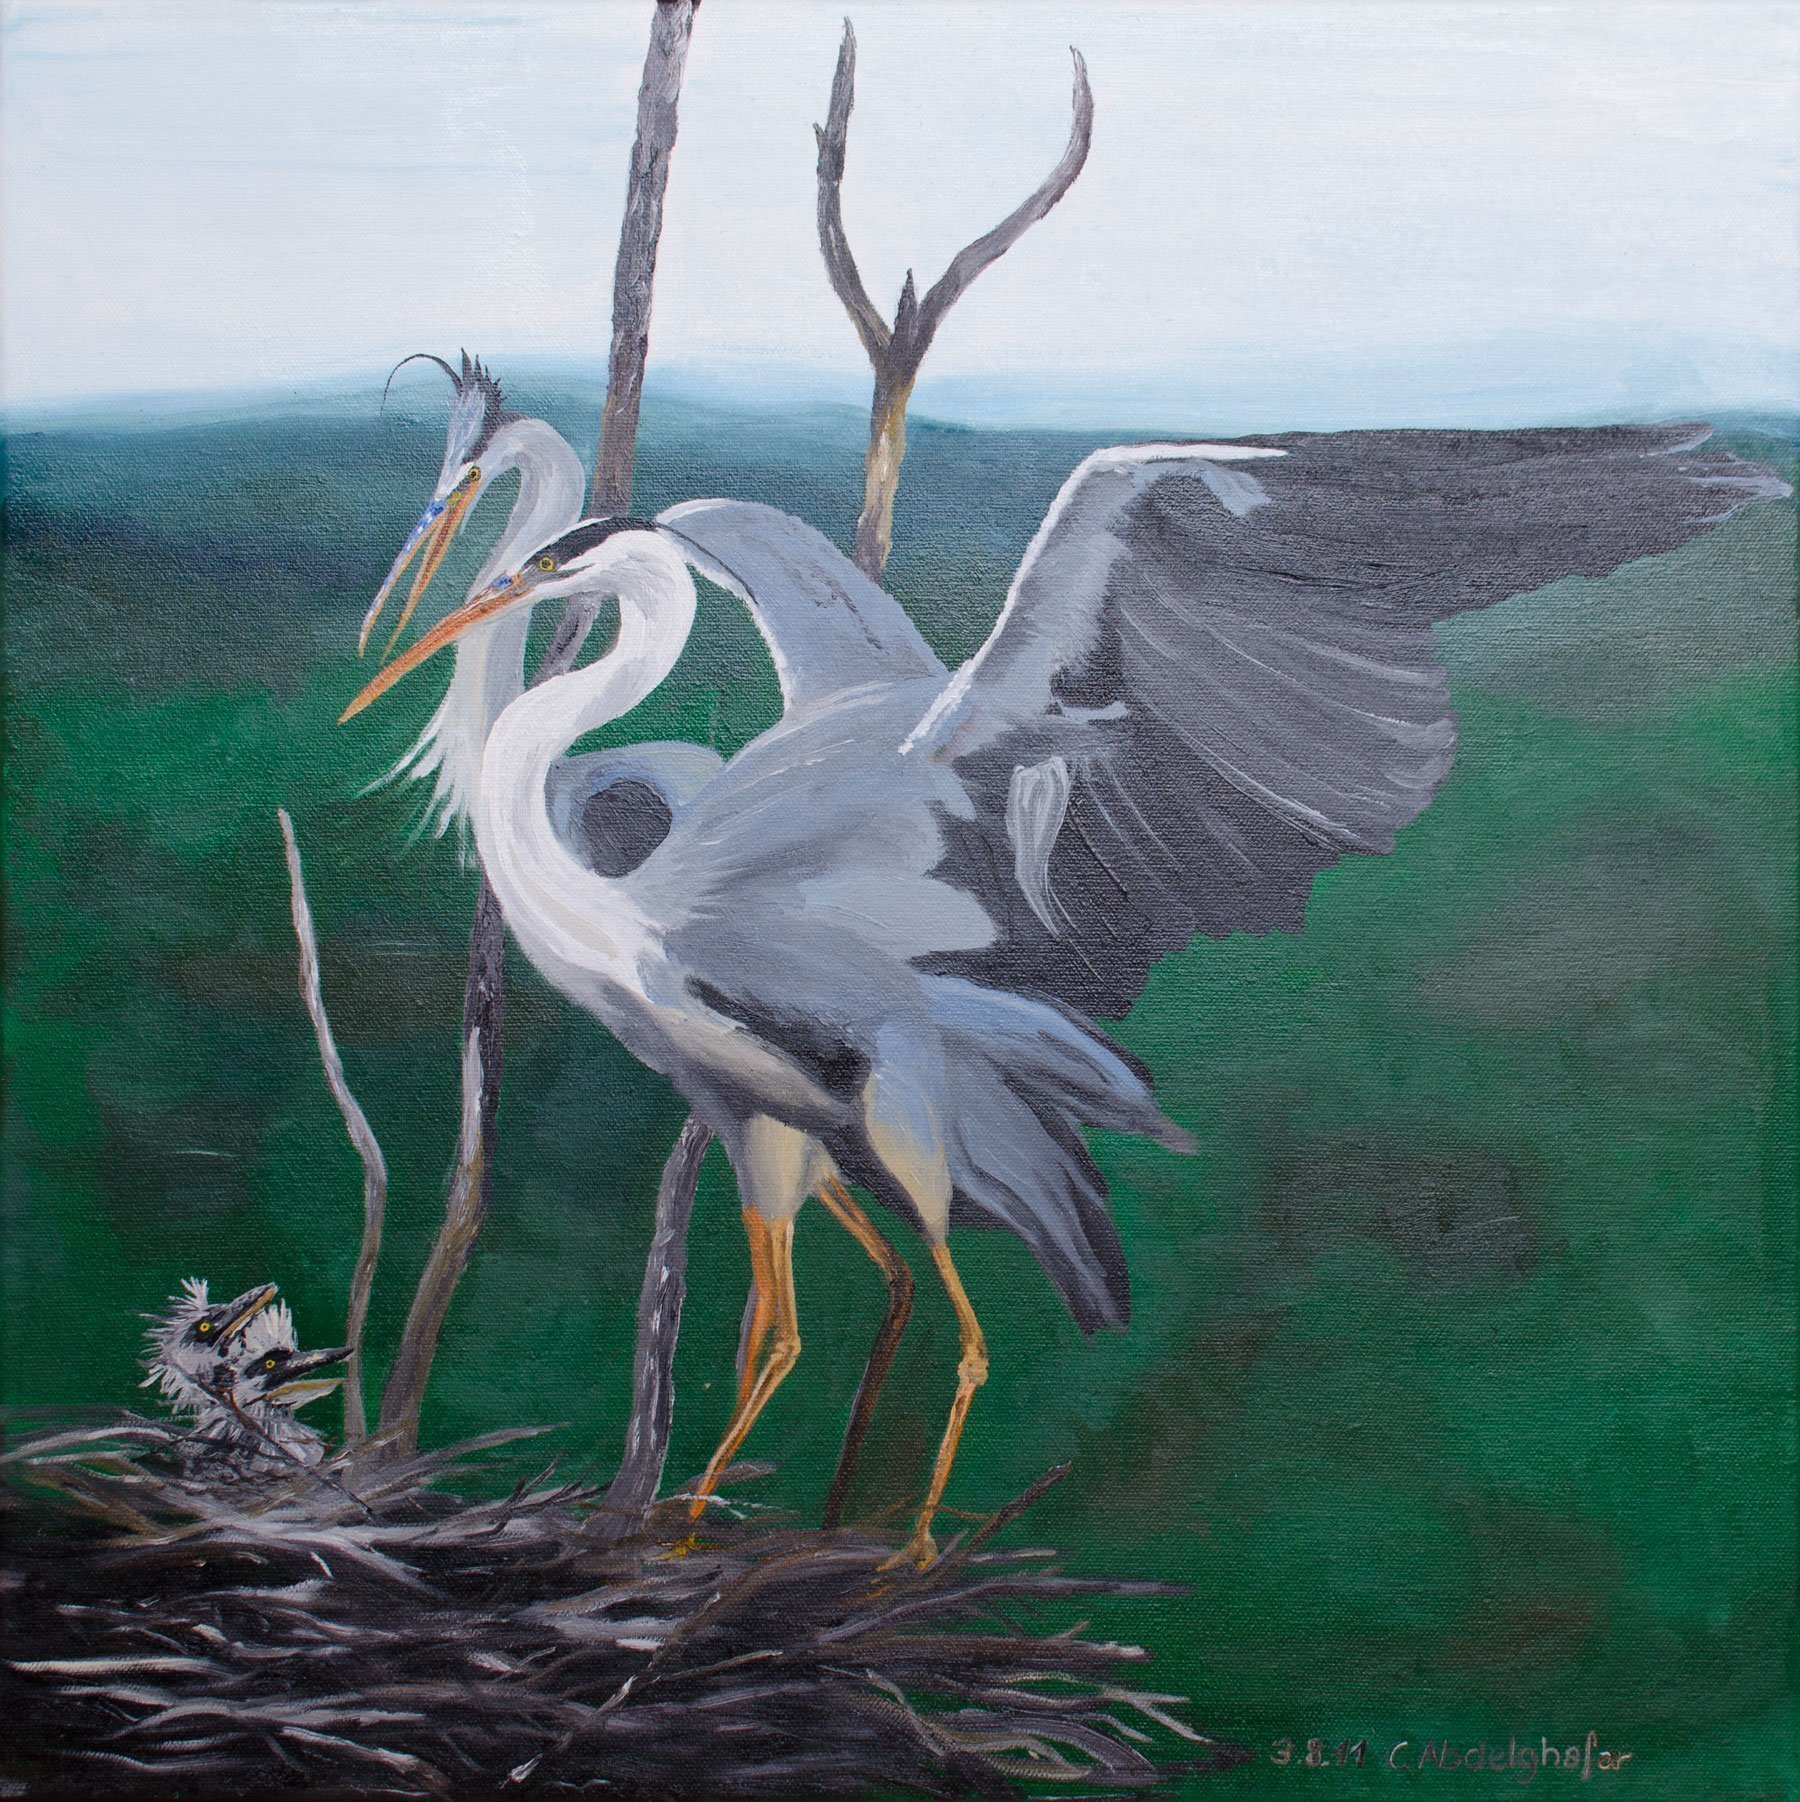 Claudia Luethi Alias Abdelghafar; Grey Herons Family, 2011, Original Painting Oil, 50 x 50 cm. Artwork description: 241 Oilpainting on canvas from a grey herons family up in the trees.  Can you see the little babies on the left side, they are sweet, arent they This painting has a wonderful wooden shadow gap frame.  ...